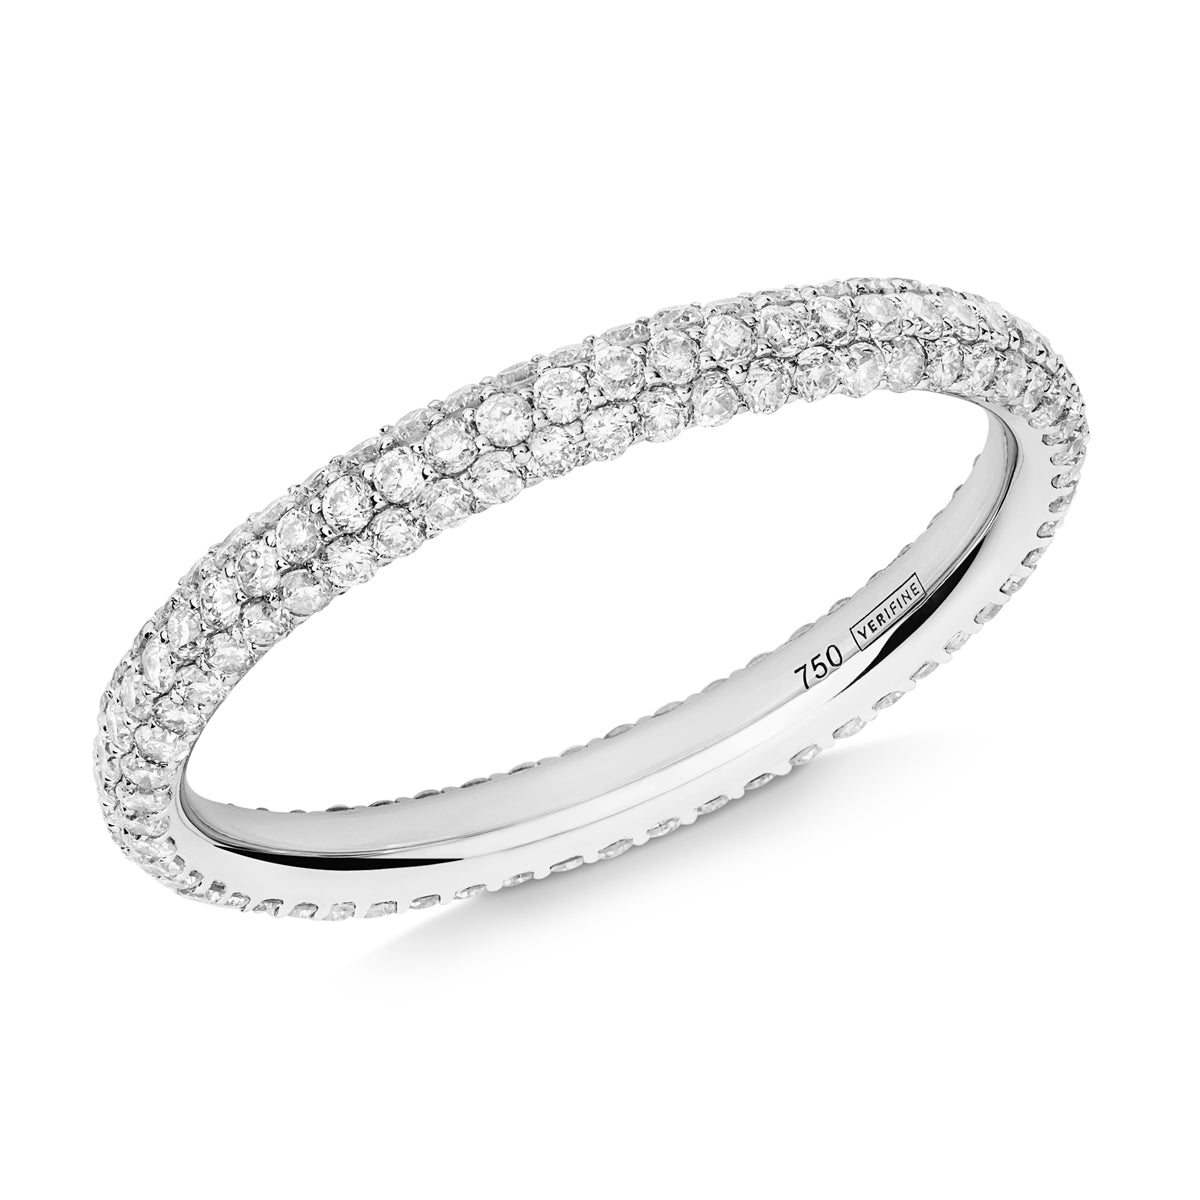 3 row diamond Gemopoli eternity ring